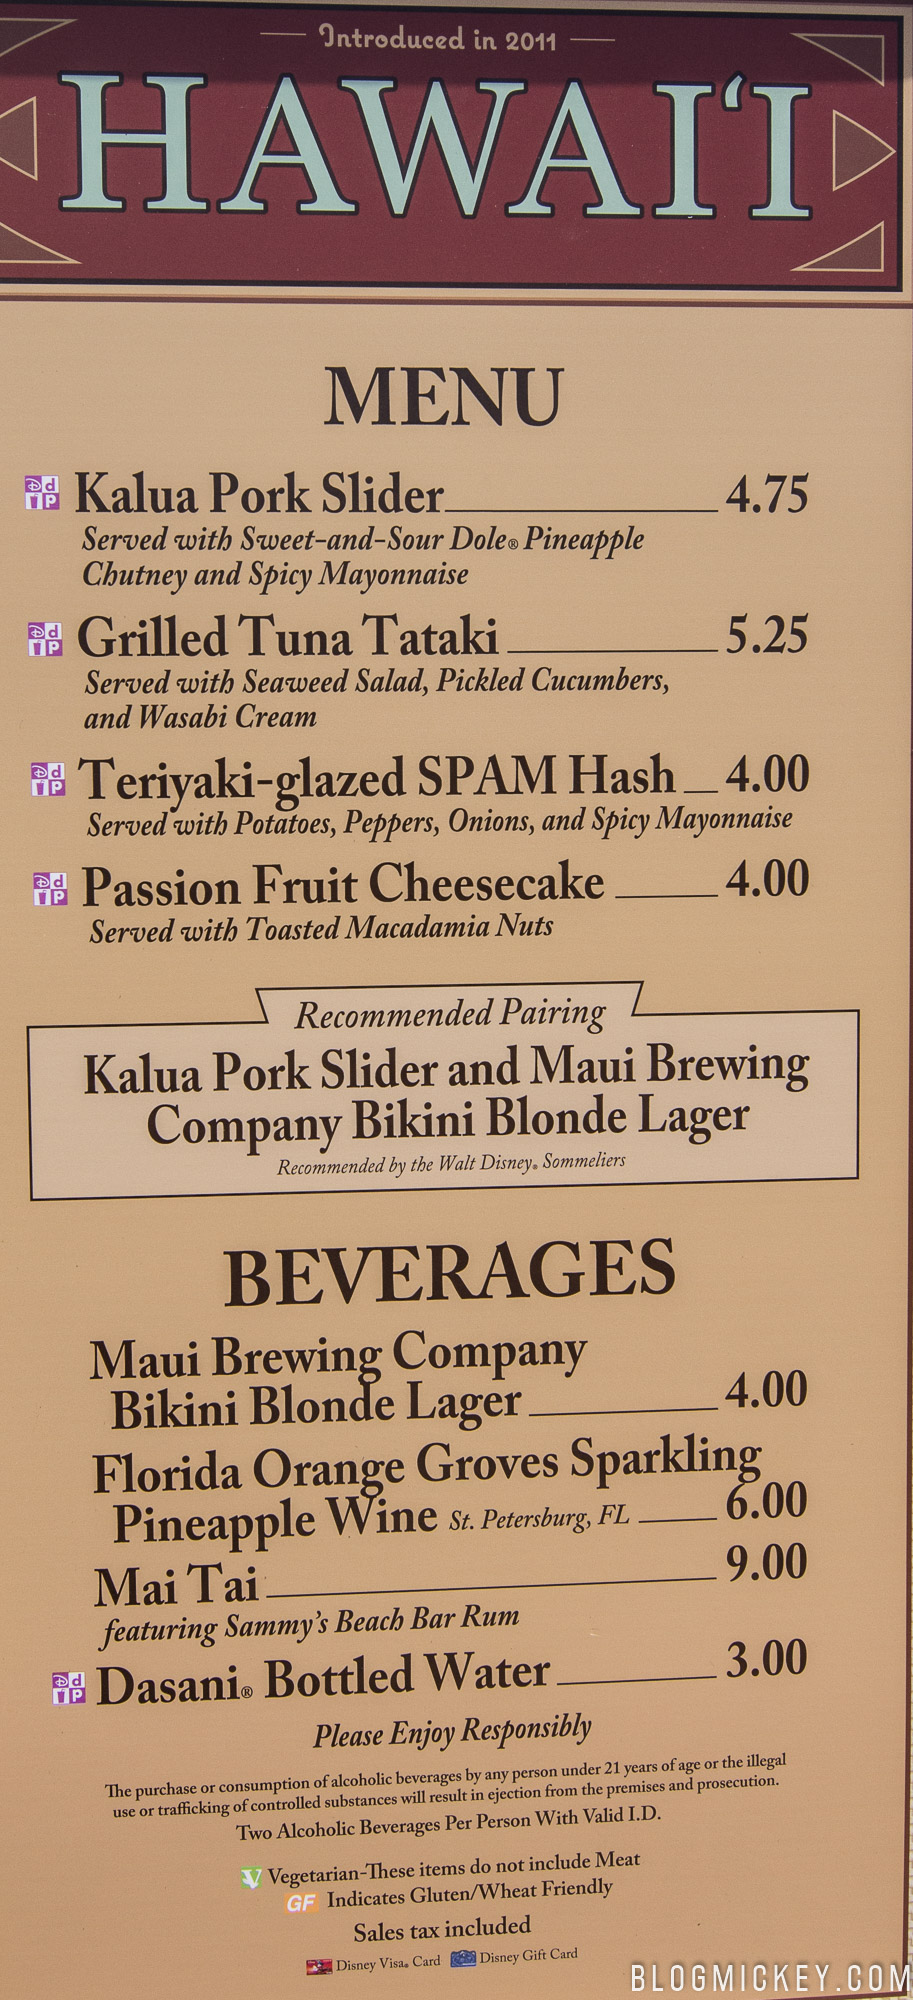 2017 Epcot International Food and Wine Festival Booths, Menus, and ...